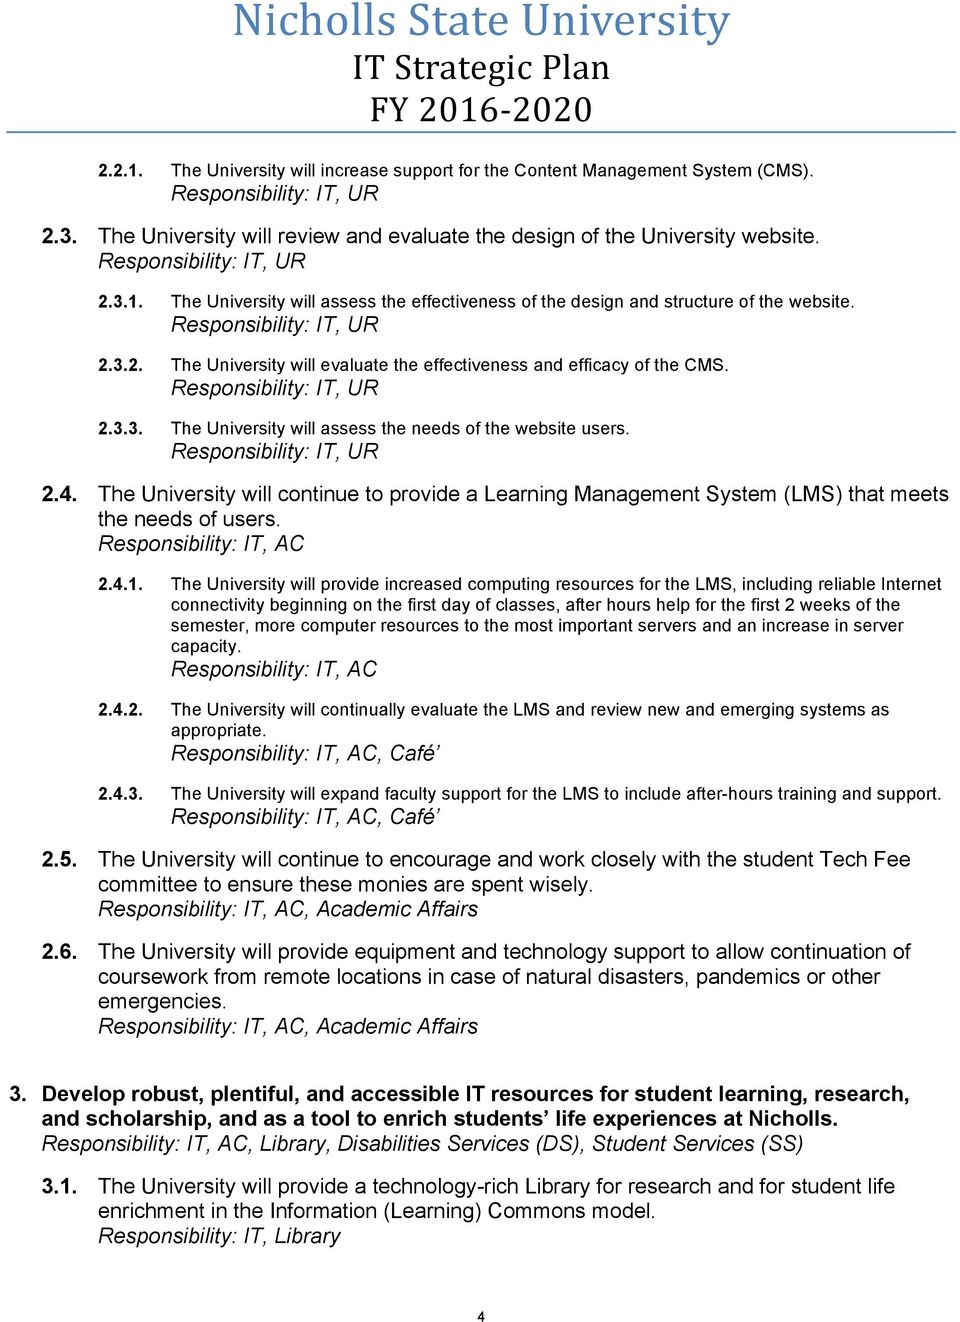 The University will continue to provide a Learning Management System (LMS) that meets the needs of users., AC 2.4.1.